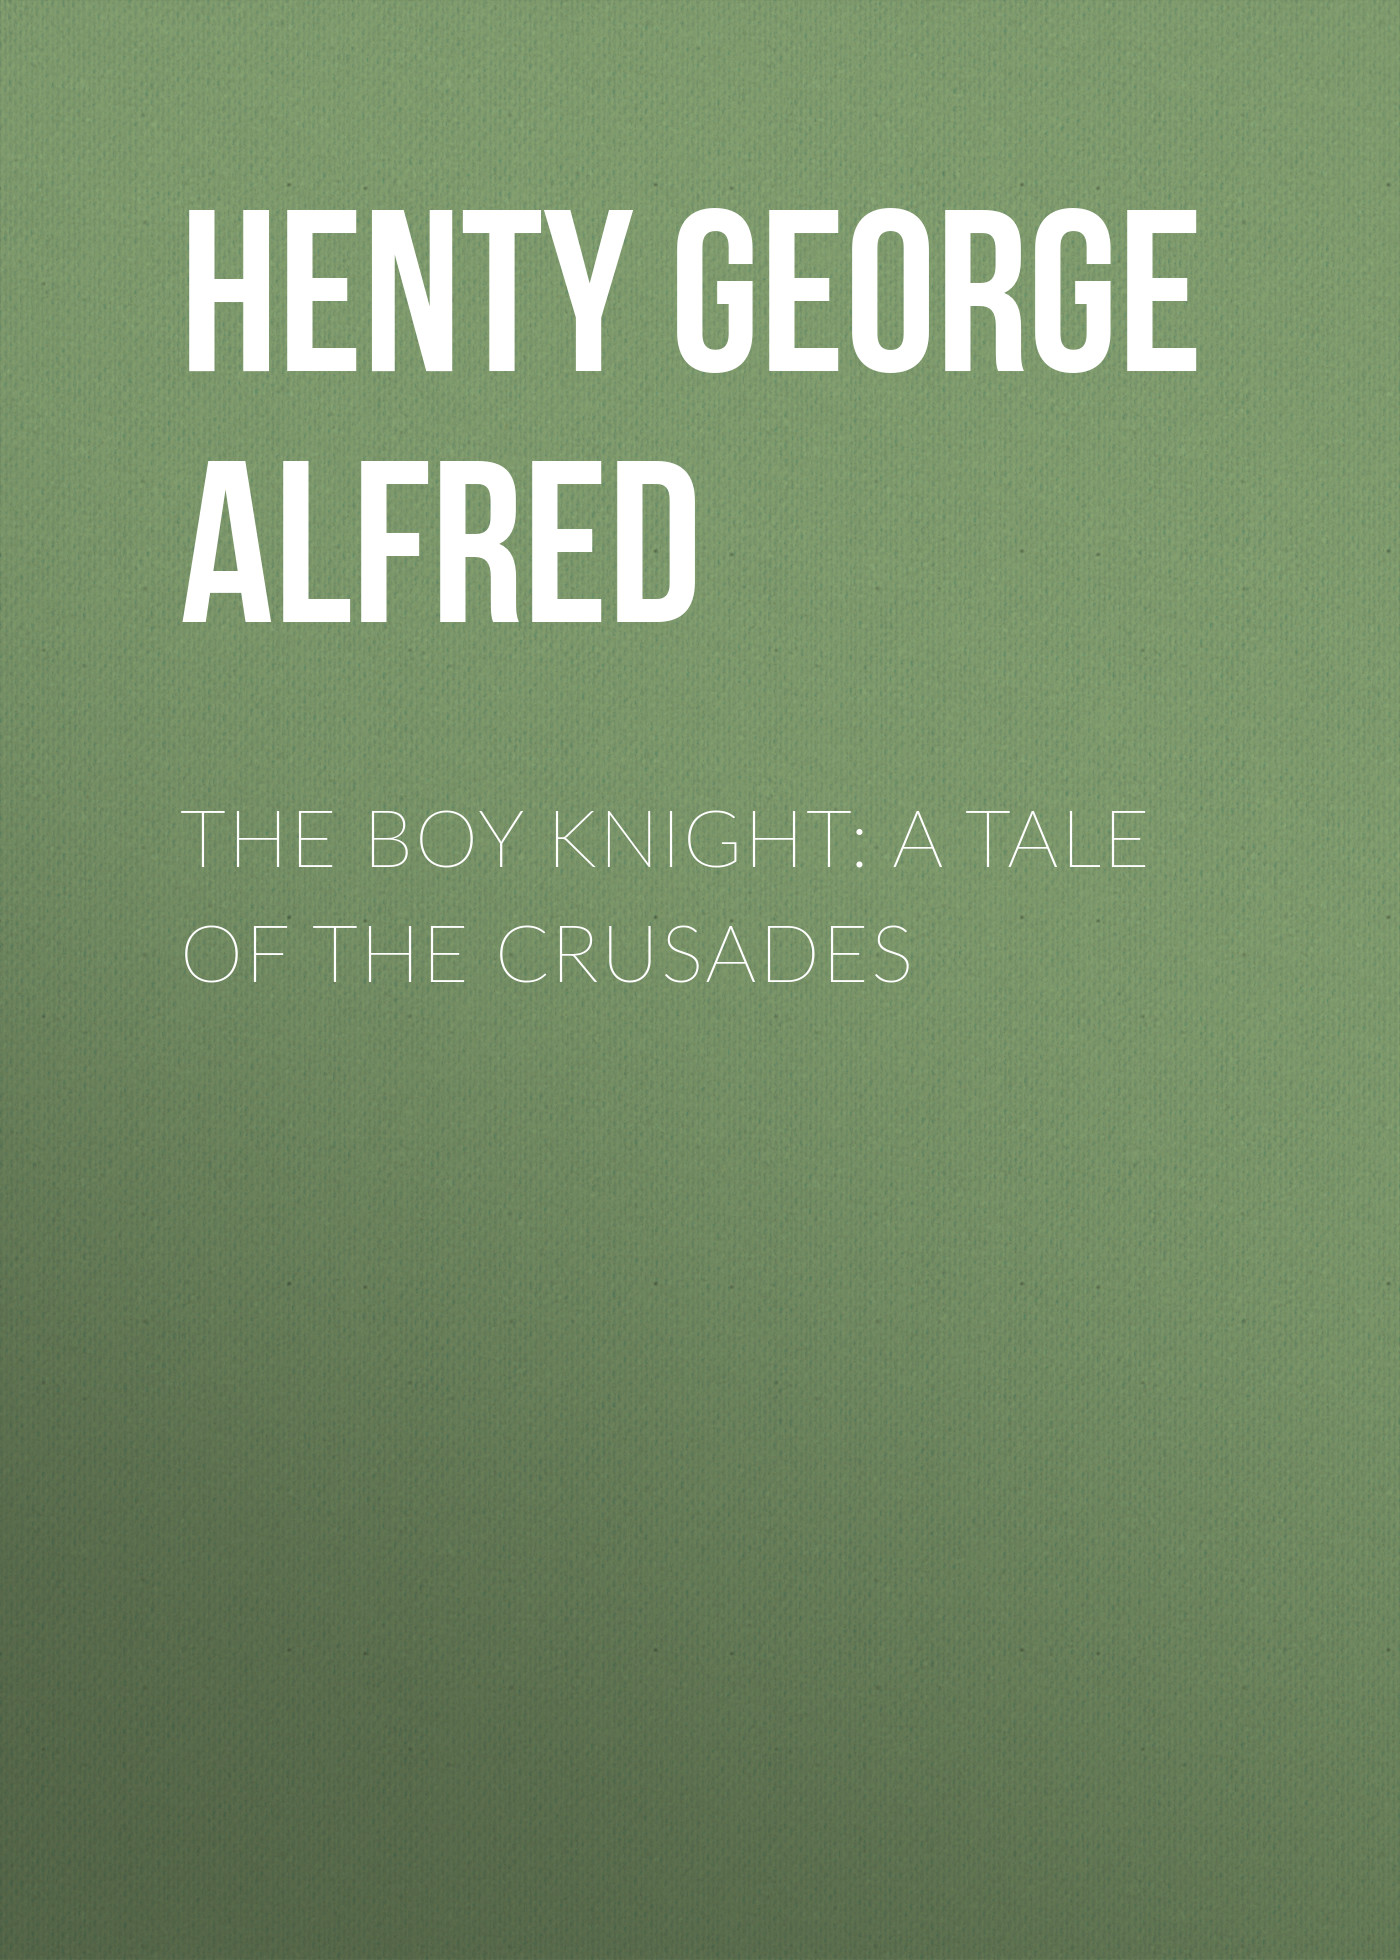 Henty George Alfred The Boy Knight: A Tale of the Crusades